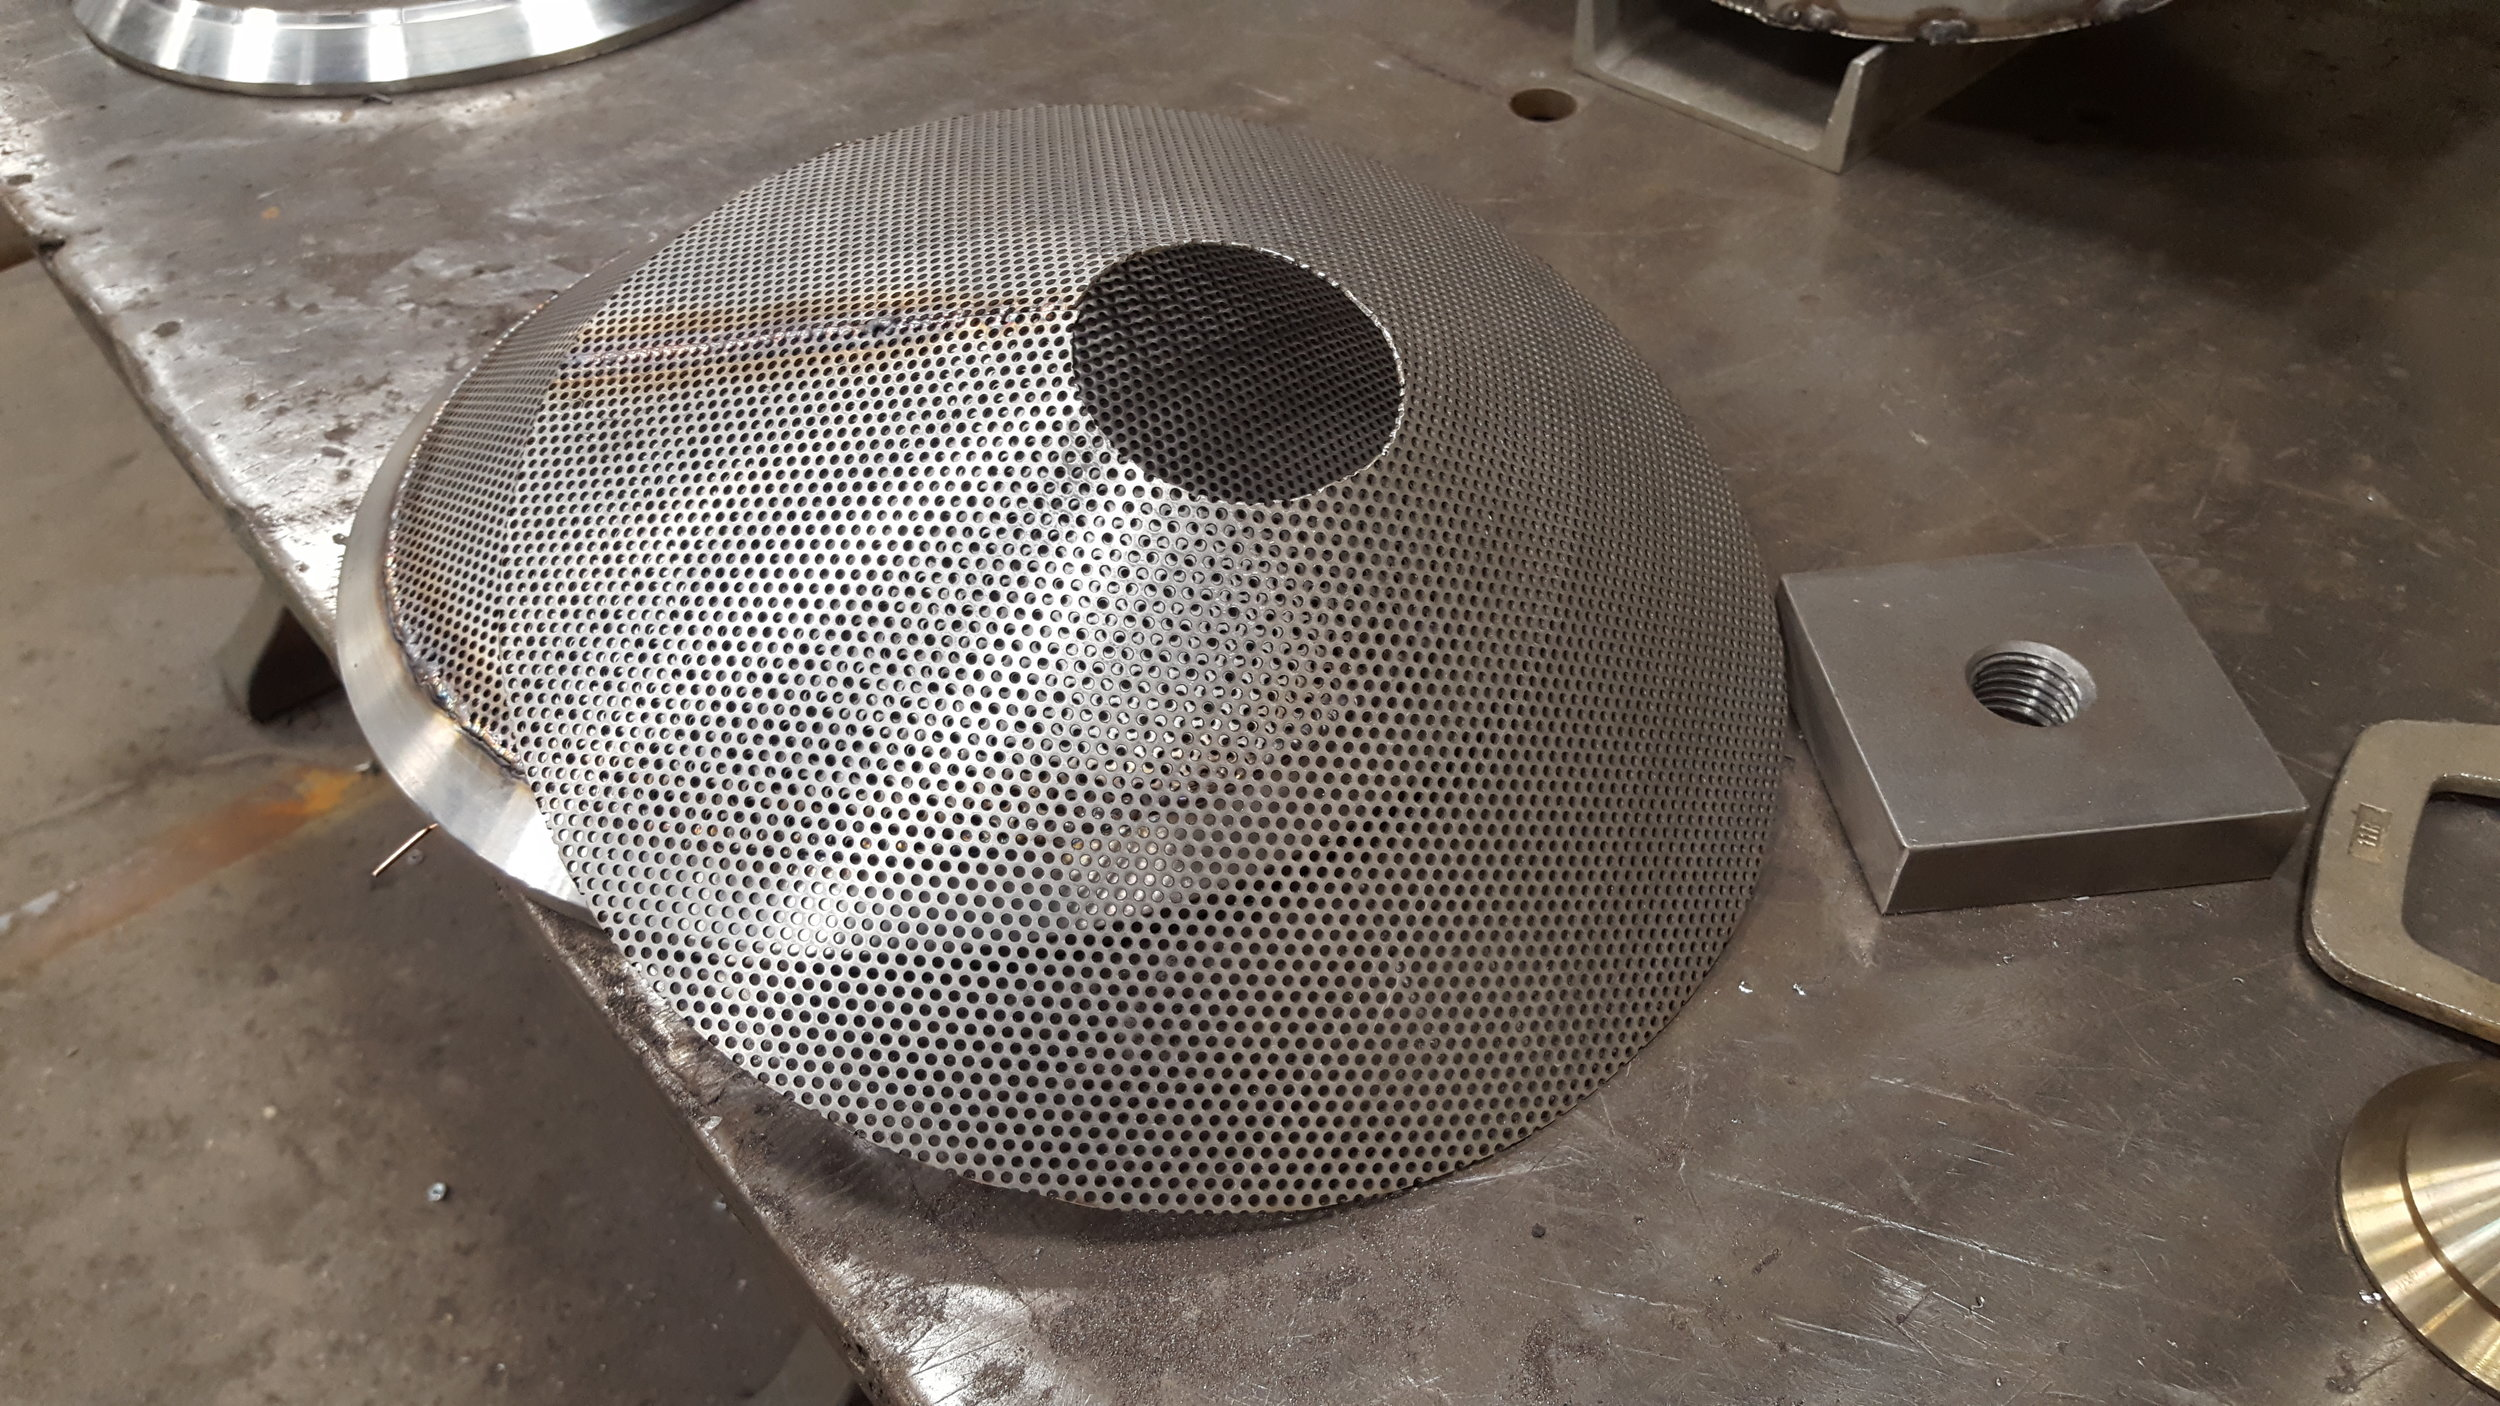 These perforated metal screens are used to remove process fluids from manufactured parts. They are assembled and welded into housings which are fabricated in-house as well.